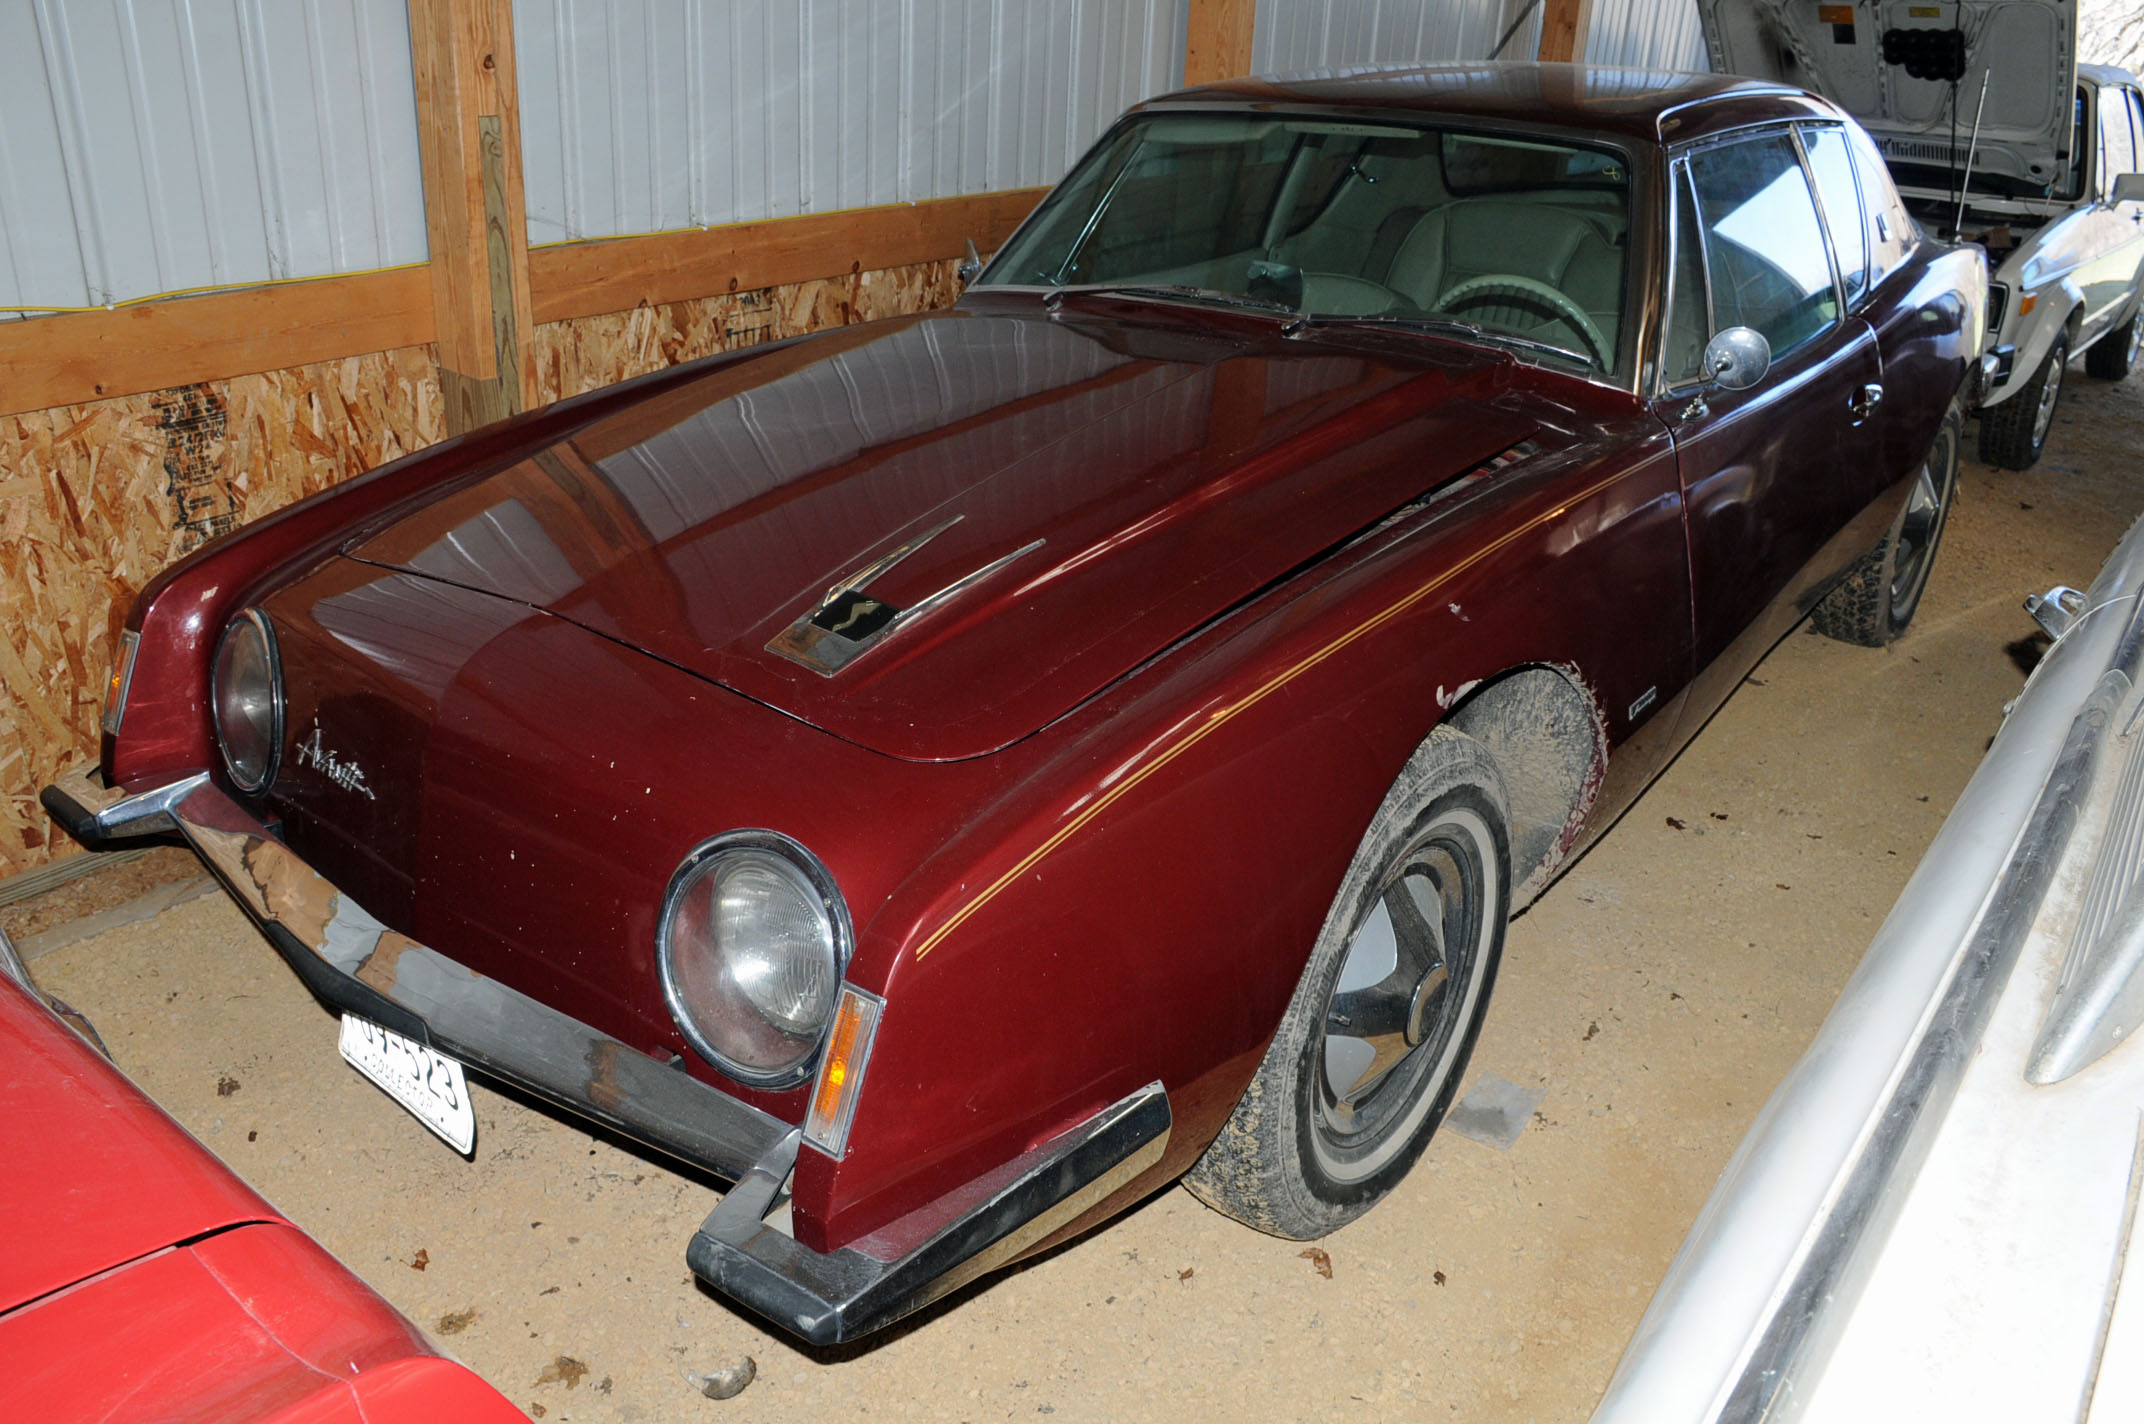 1963 Avanti R2 vanderbrink virgil marple auction 5